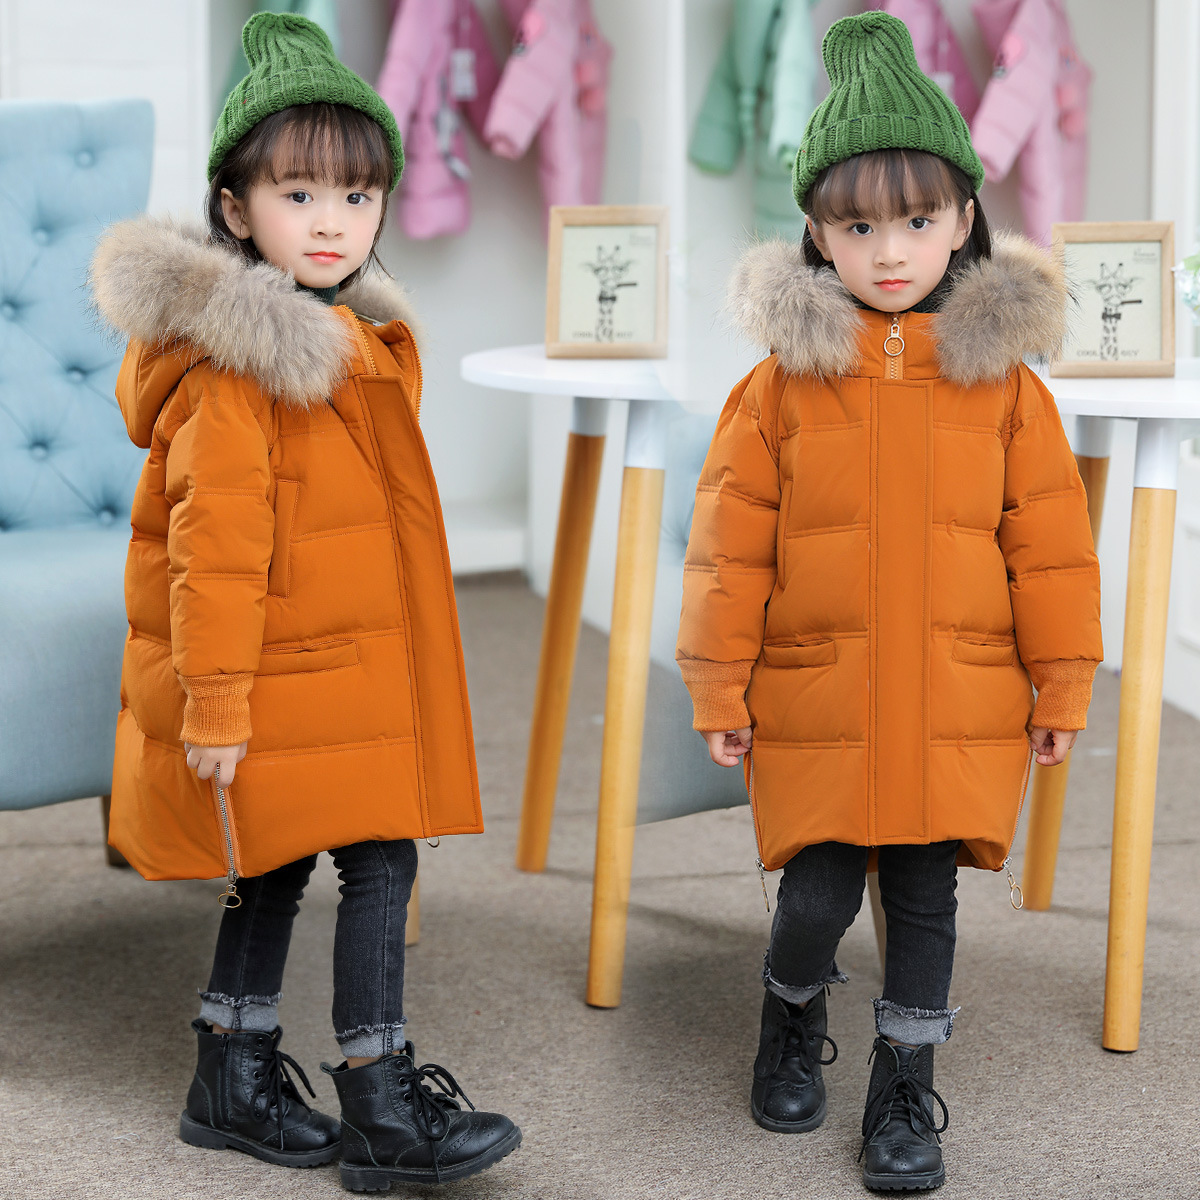 Girls Winter Coat Casual Outerwear Warm Thick Hooded Baby Down Jacket for Girl Clothes Big Fur Collar Kids Parkas Toddler Cloth цена 2017